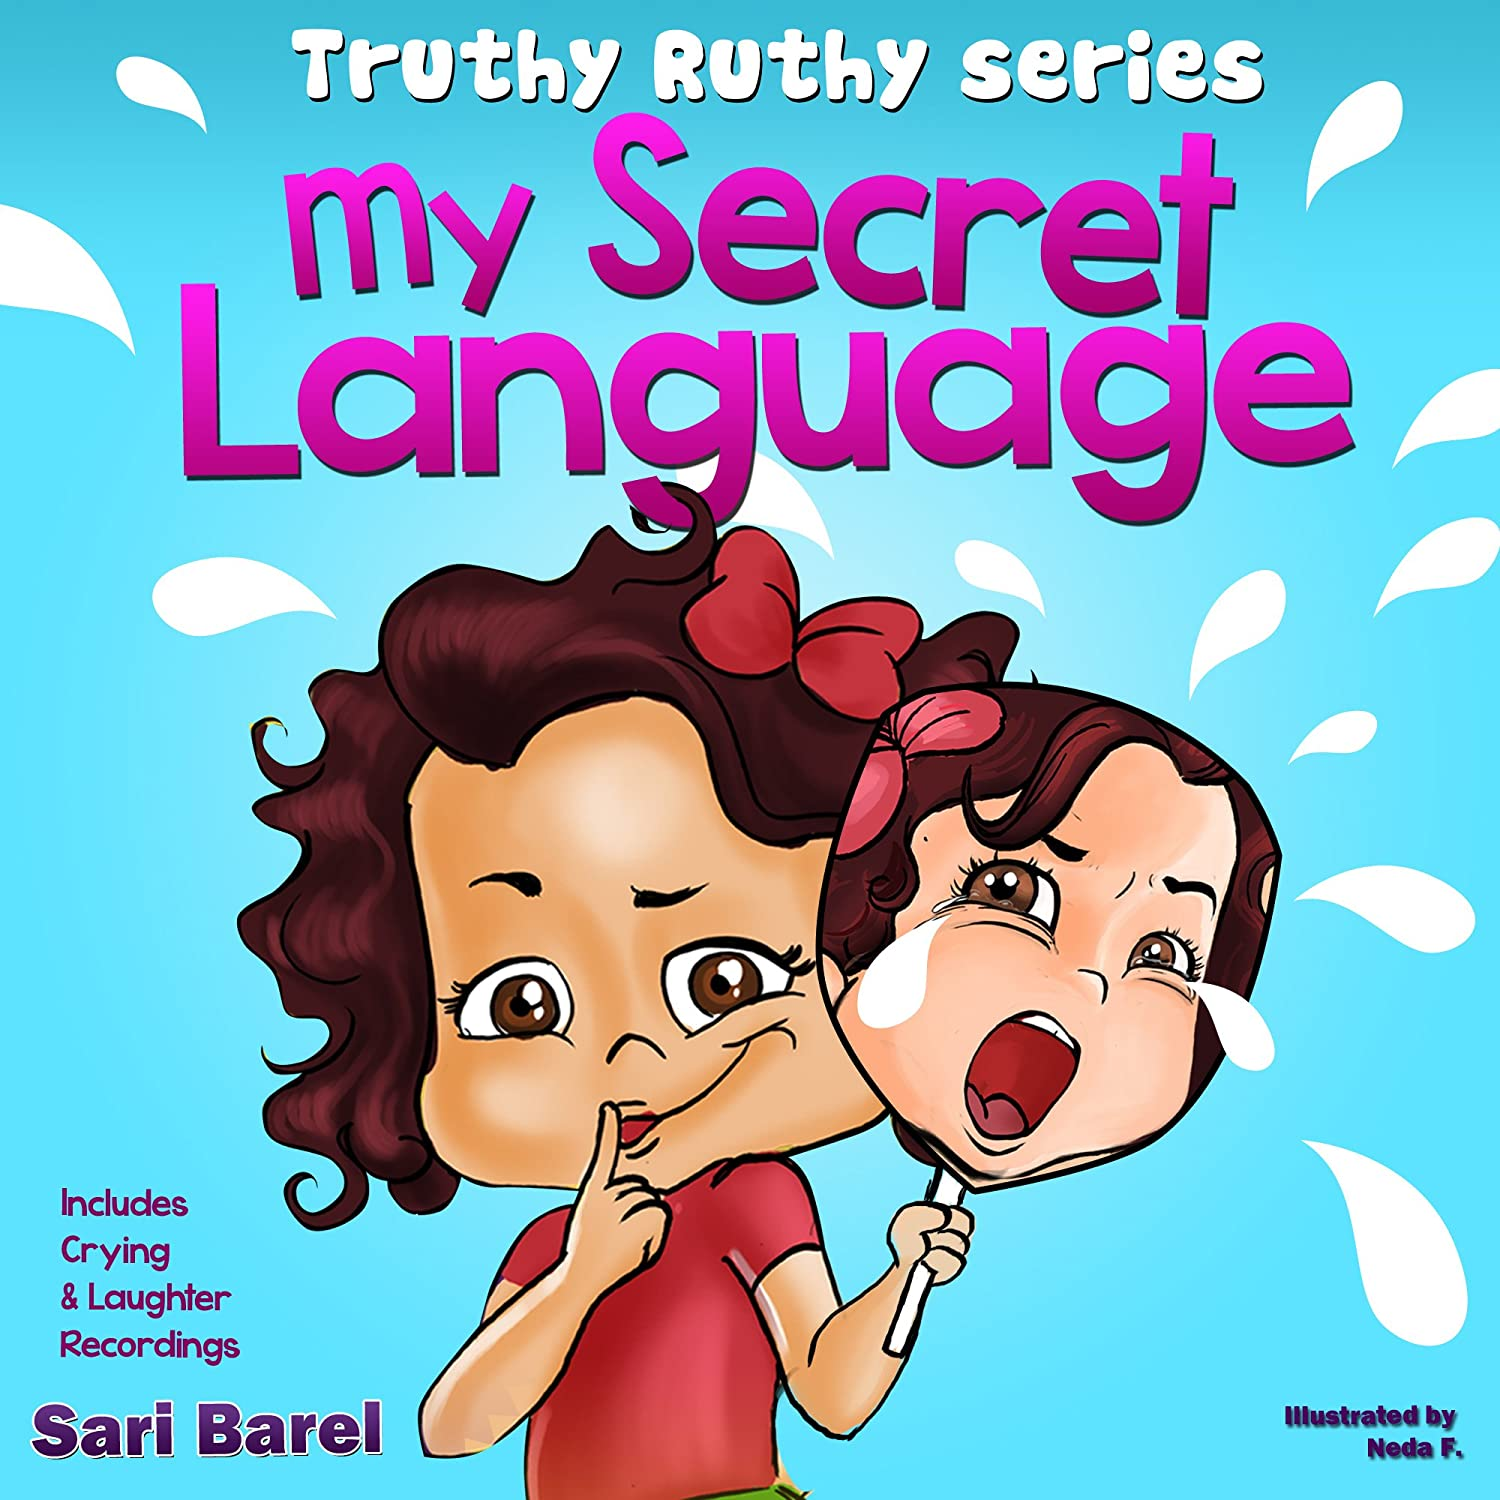 My Secret Language: Children's book for 'how to deal with a crying child' (Truthy Ruthy series) by Sari Barel